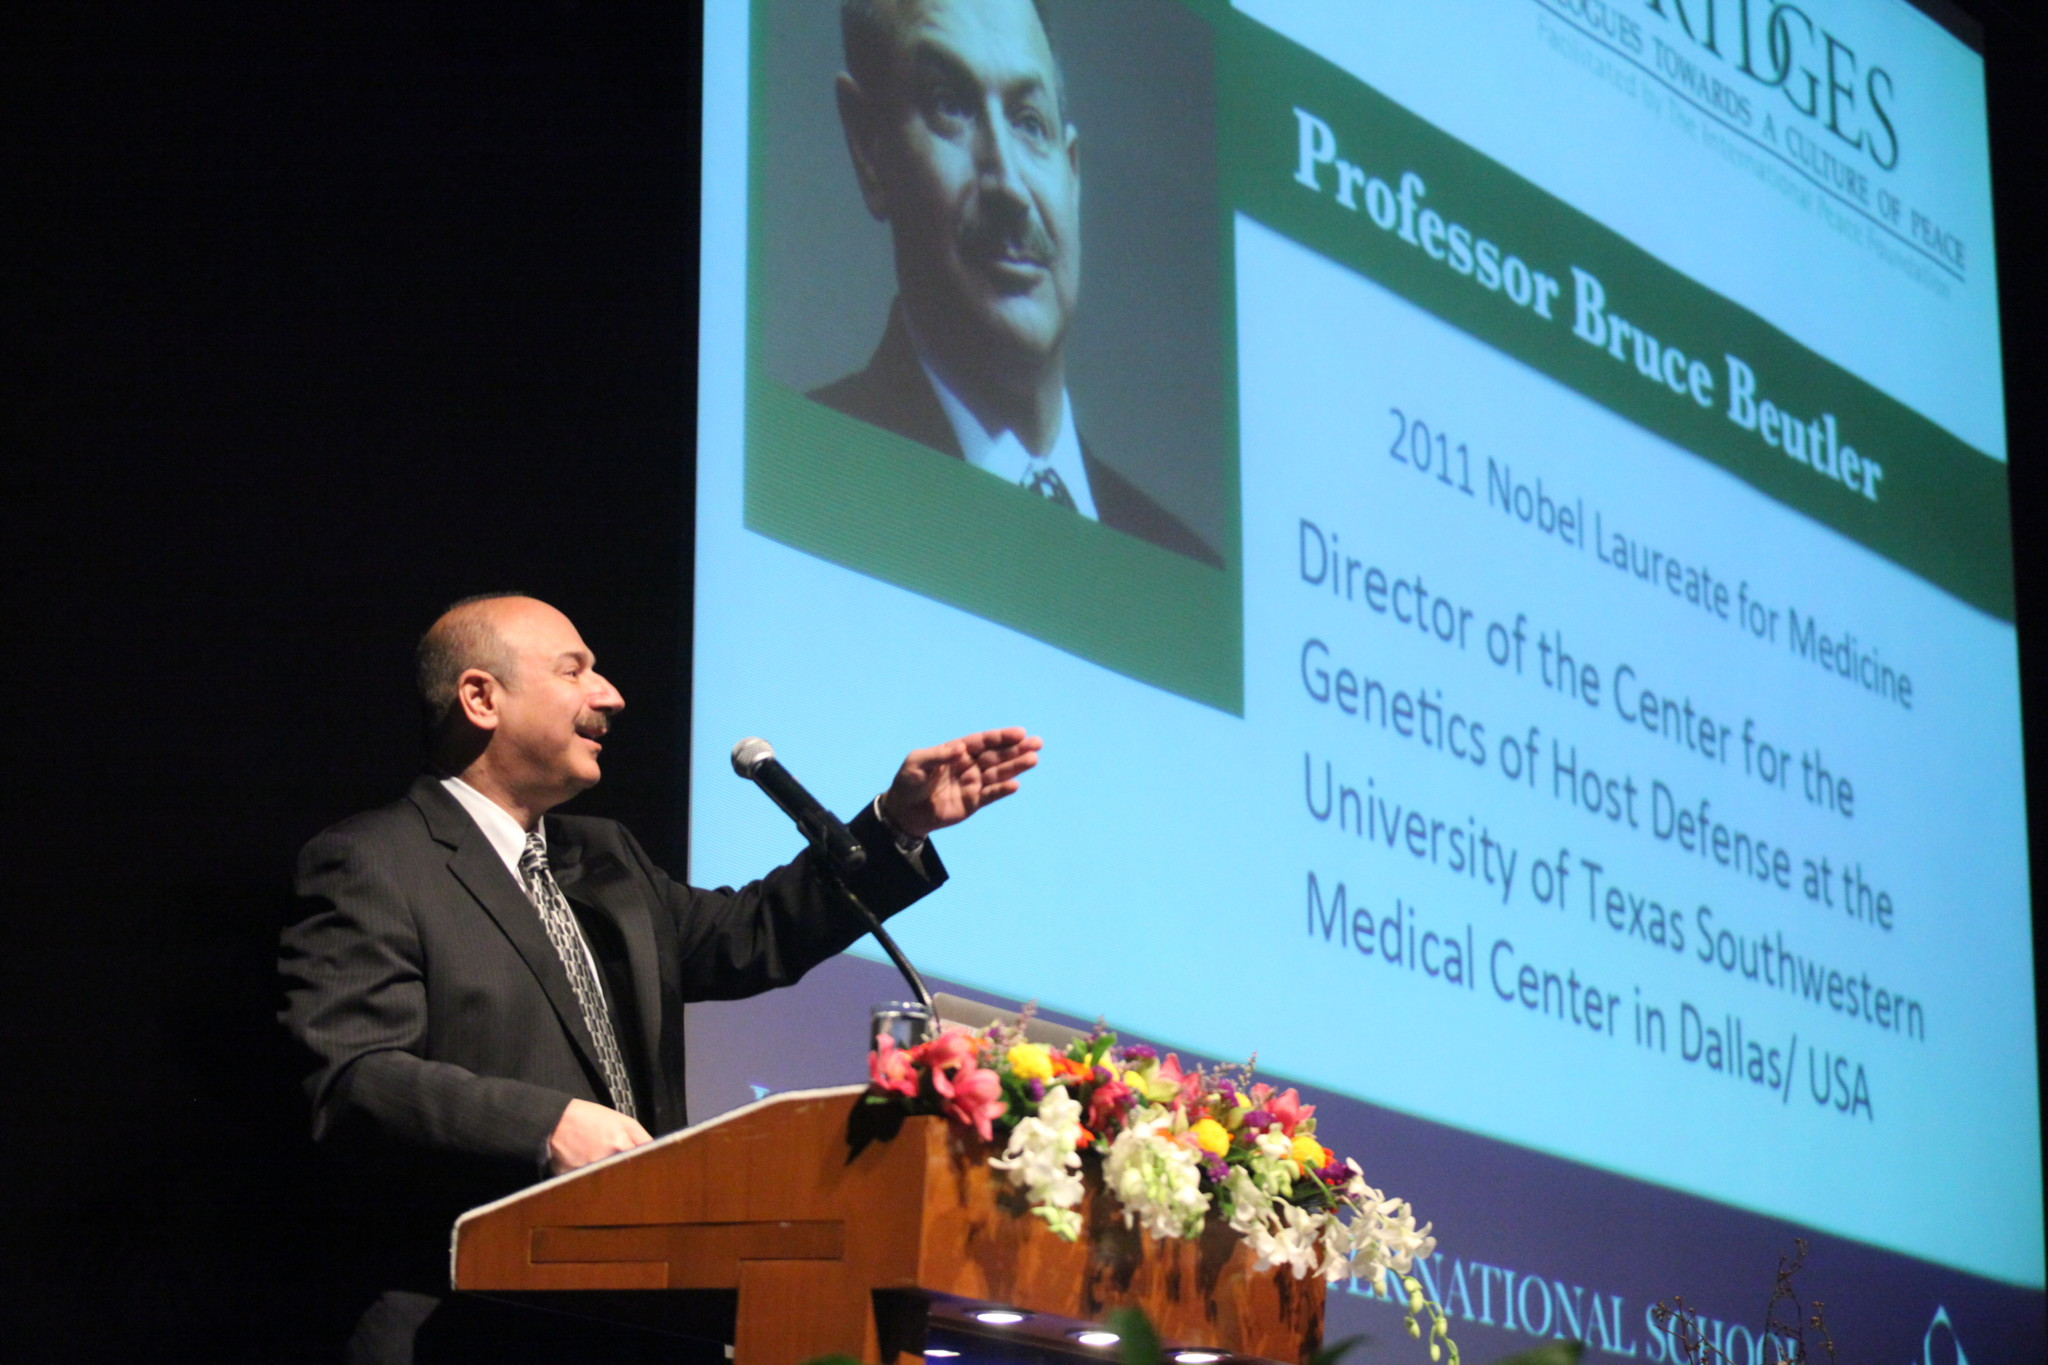 Medicine Nobel Laureate Prof. Bruce A. Beutler at NIST International School in Bangkok